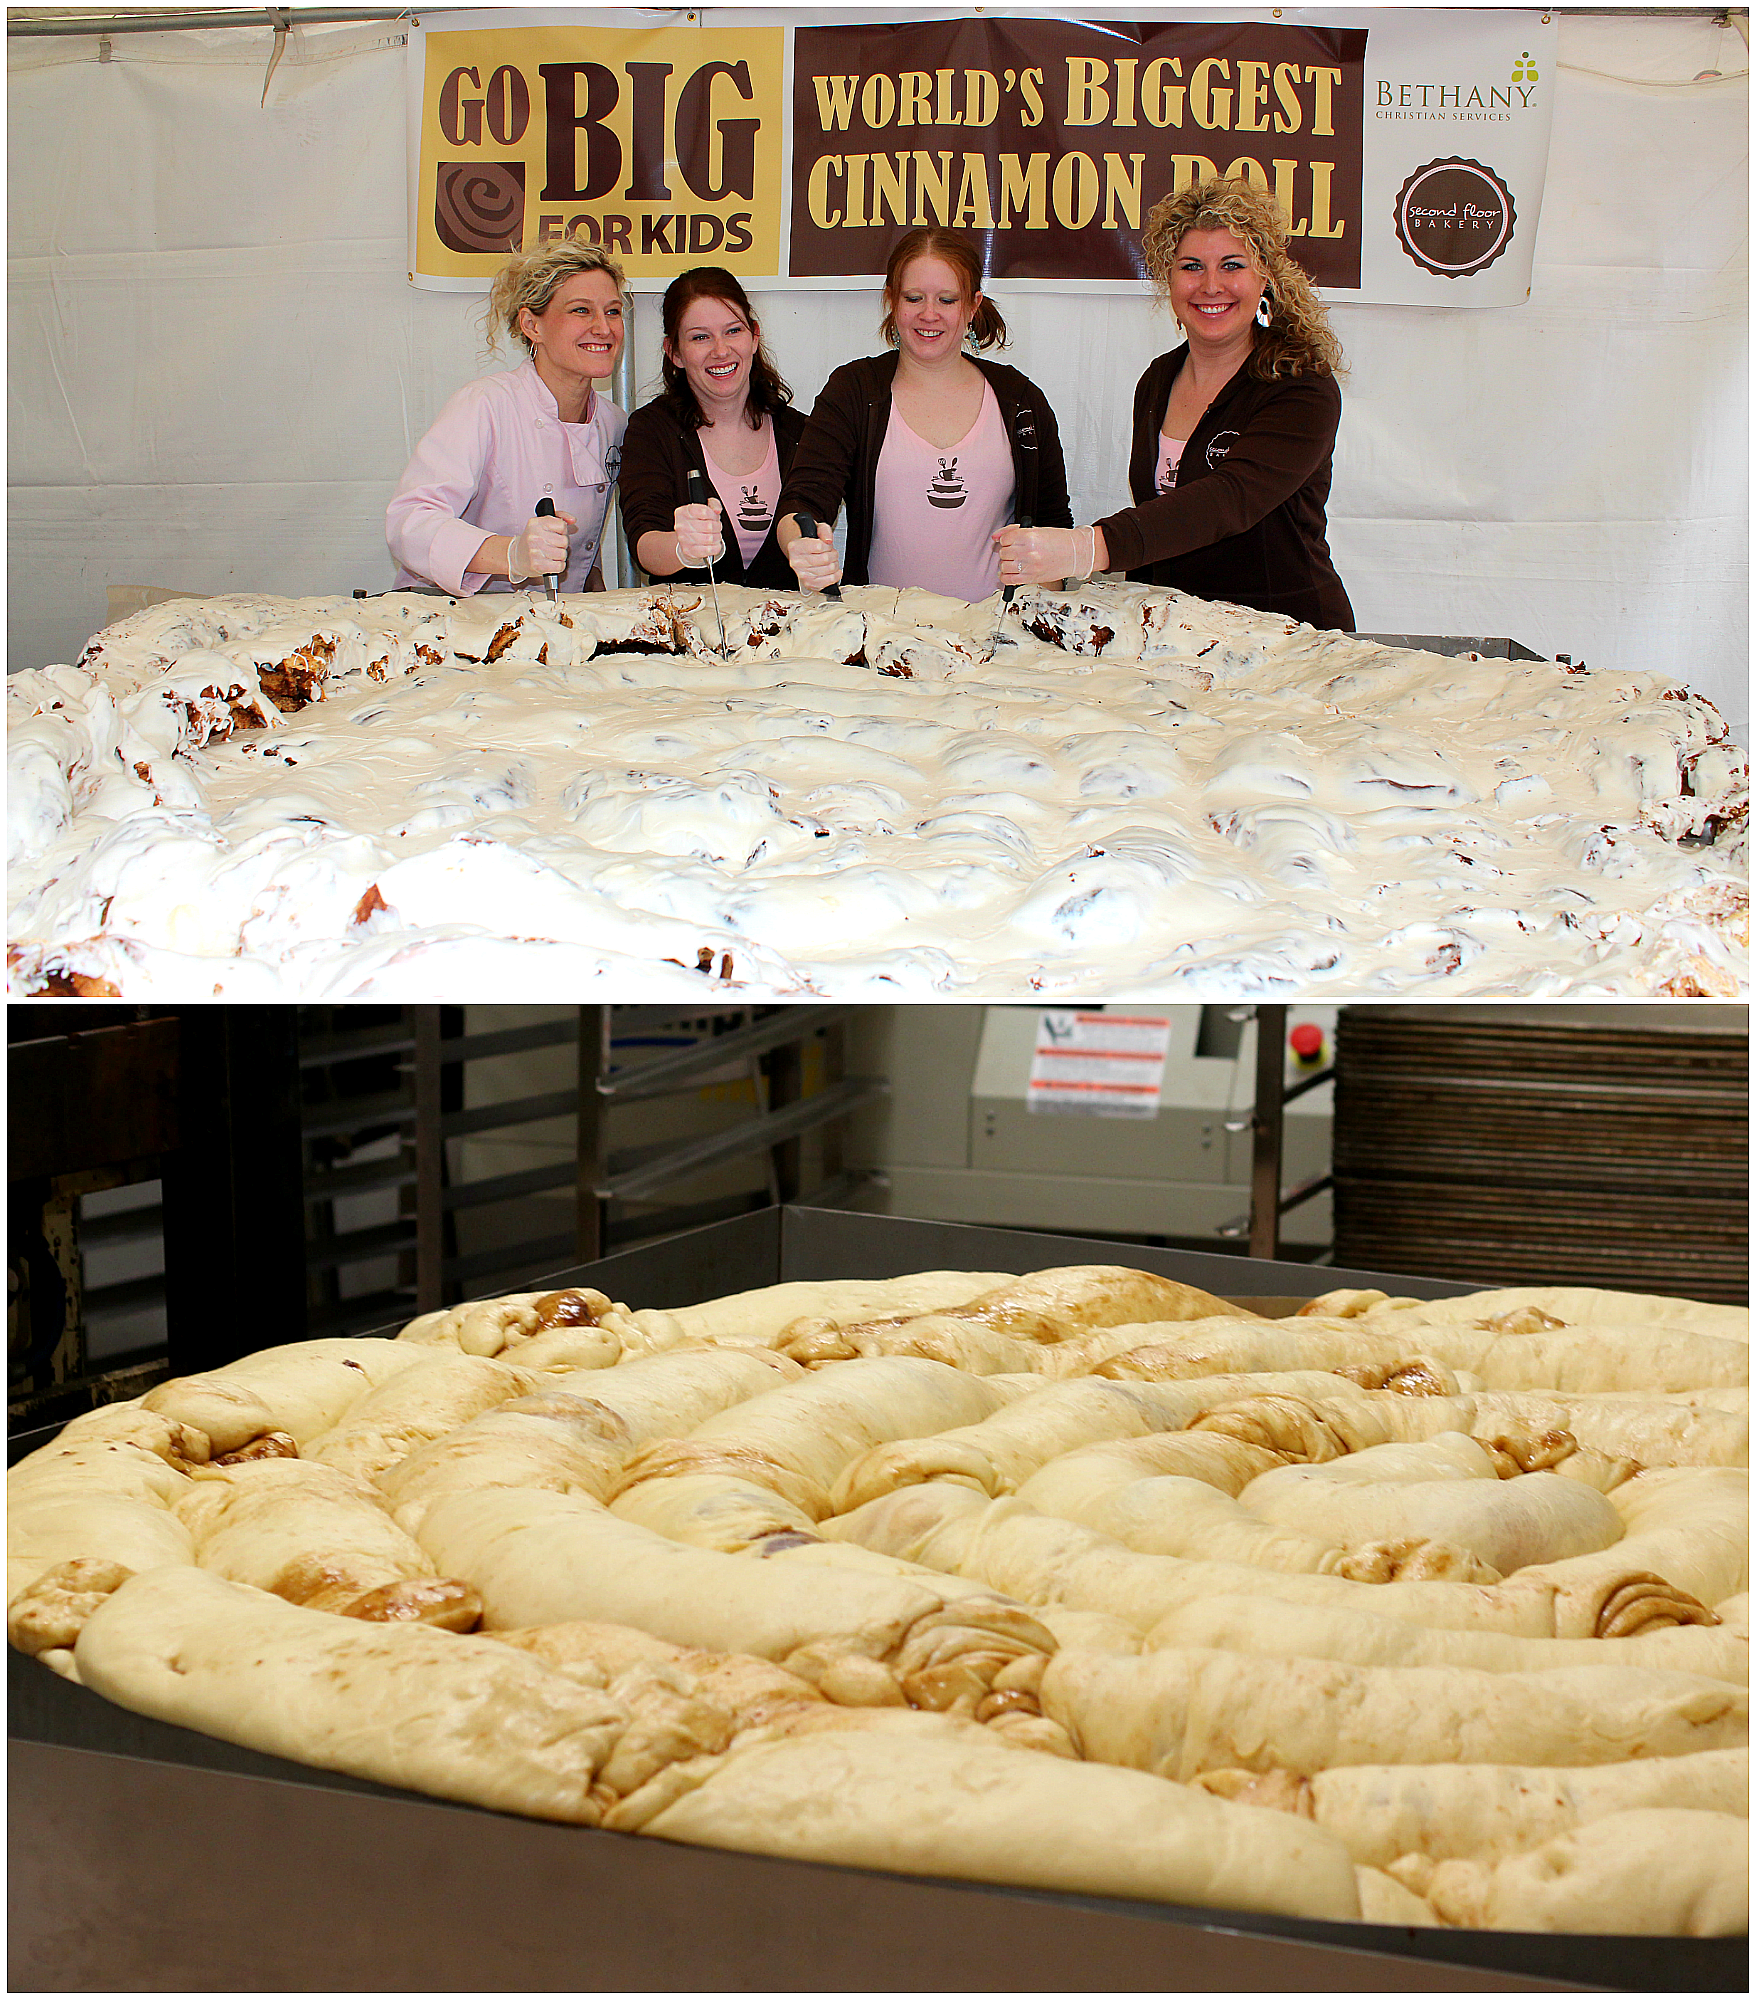 The Record For The Largest Cinnamon Roll Is 276 Kg (609 Lb) And Was. Hall  DecorationsHolland MichiganMichigan ...